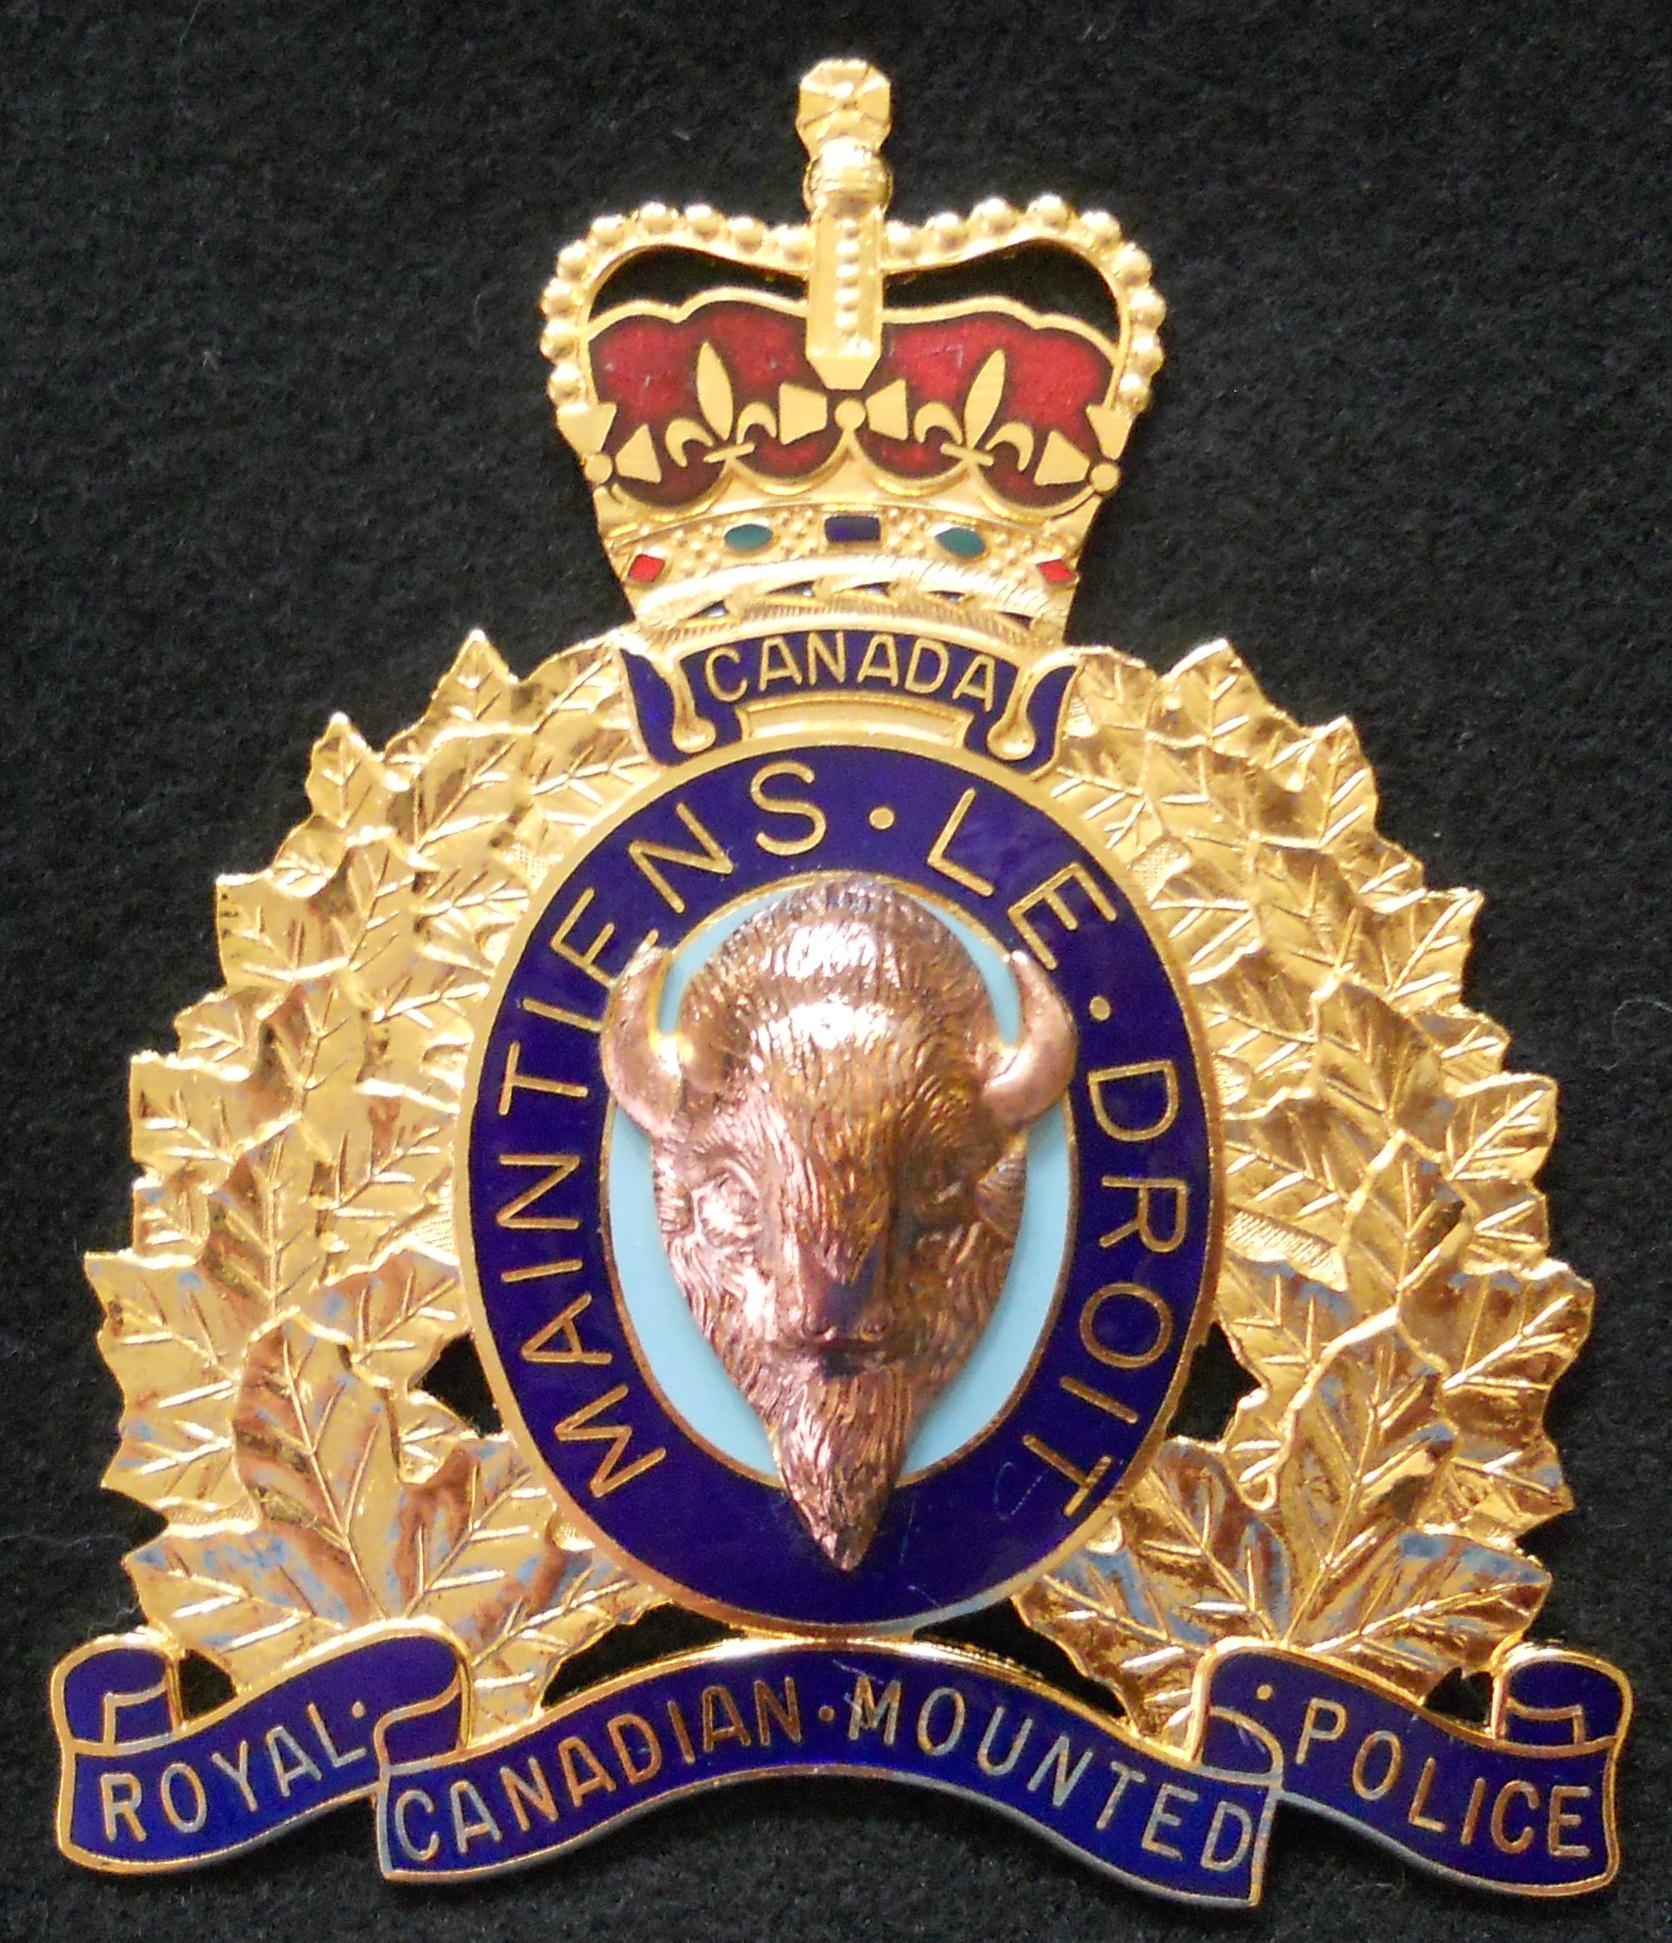 ONE PERSON KILLED IN SEMI CRASH ON THE QE-2